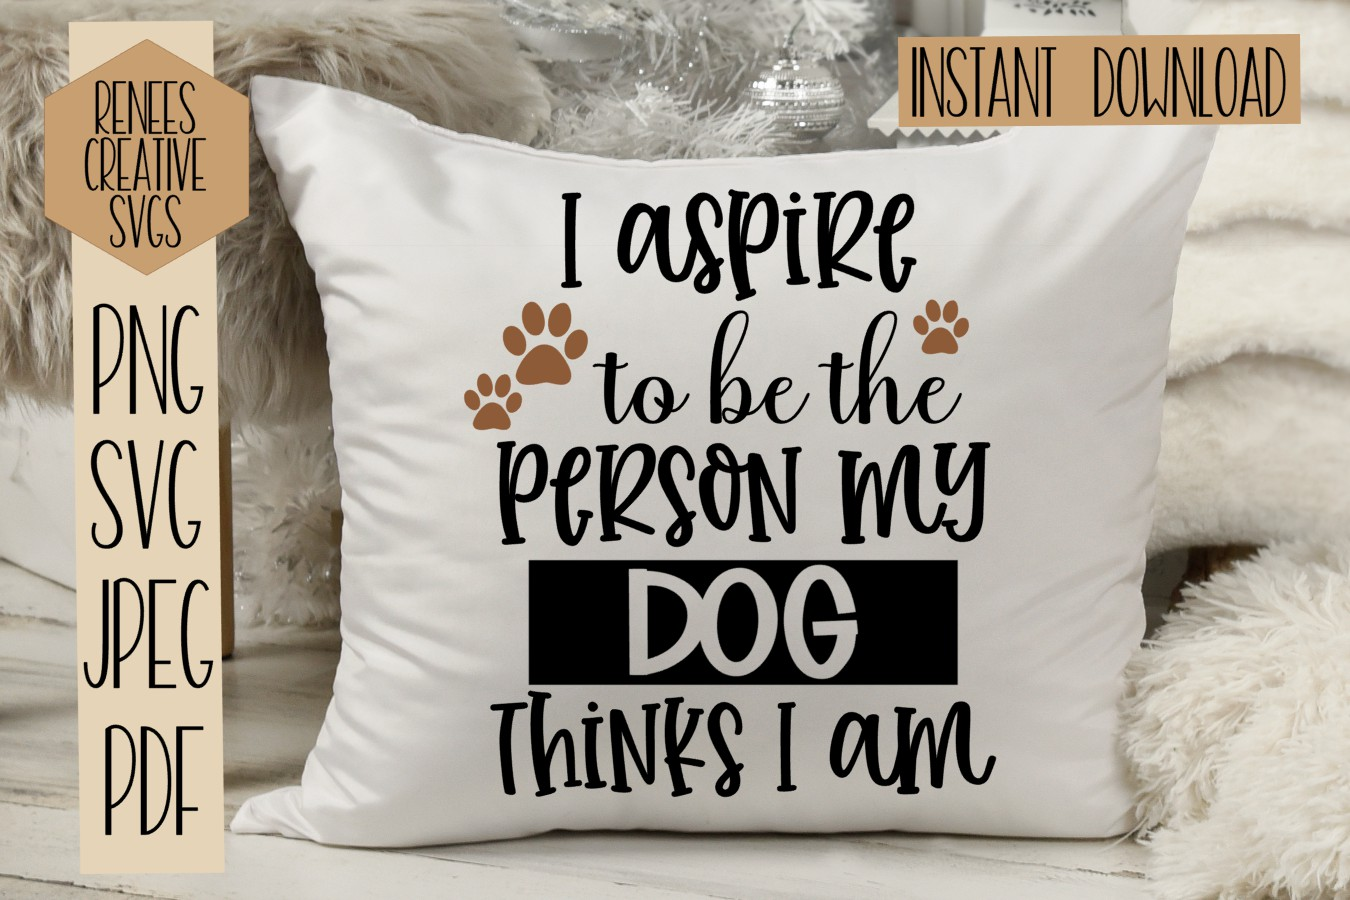 I aspire to be the person my dog thinks i am | Svg Cut File example image 2